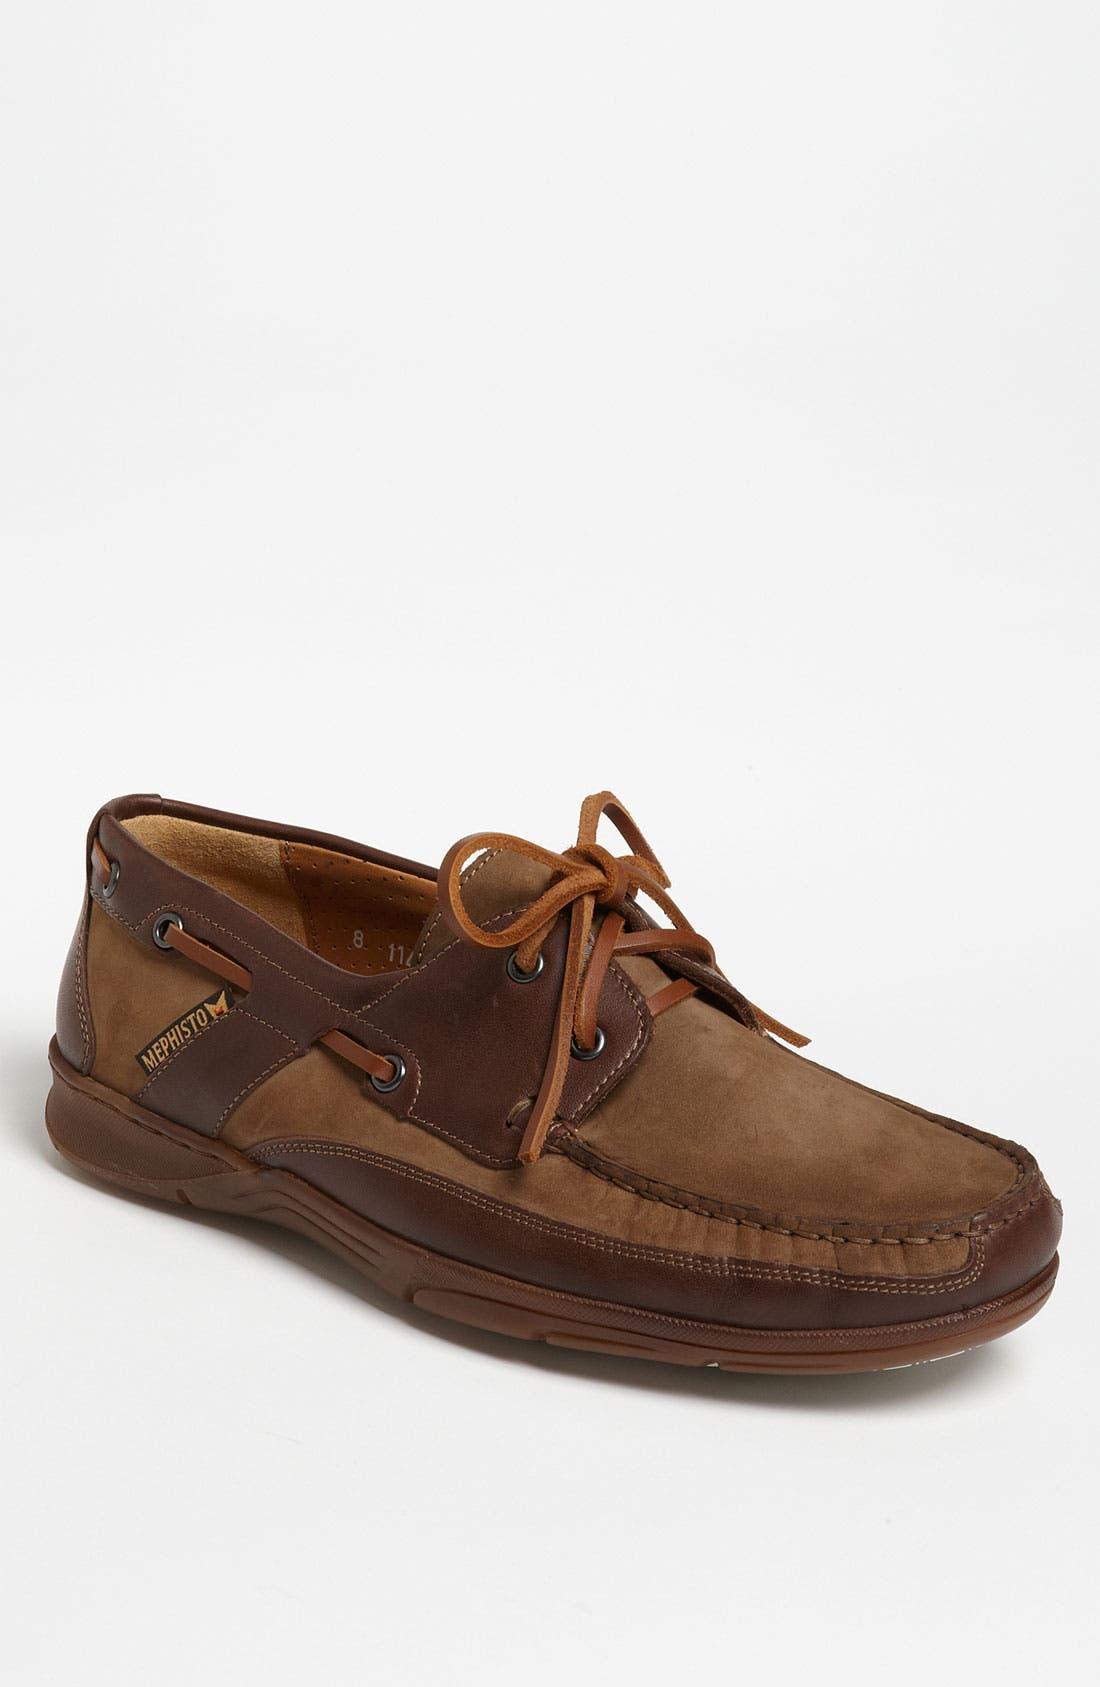 Alternate Image 1 Selected - Mephisto 'Felix' Boat Shoe (Men)